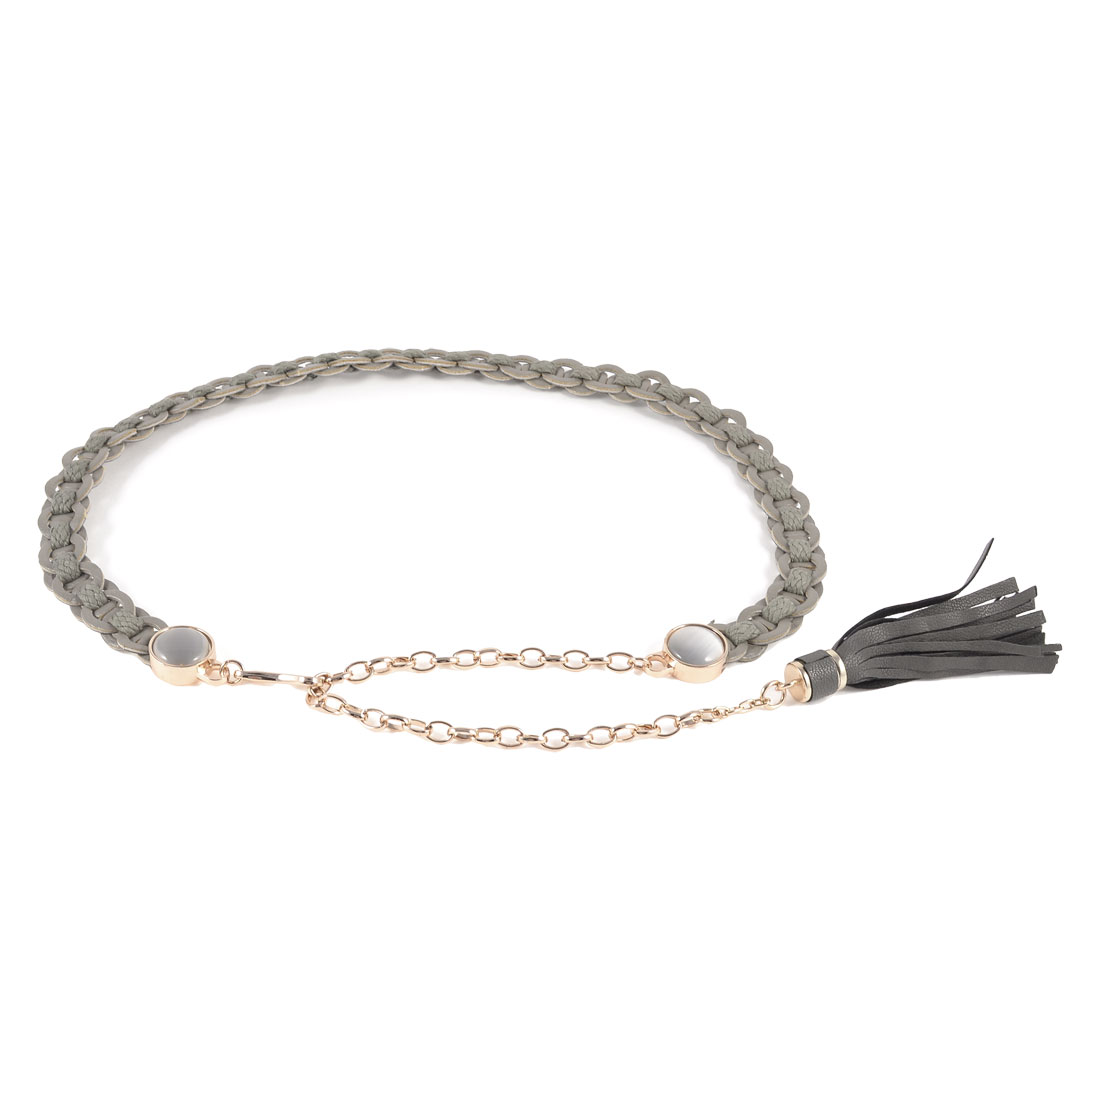 Ladies Opal Decoration Faux Leather Braided Band Chain Slender Waist Belt Gray